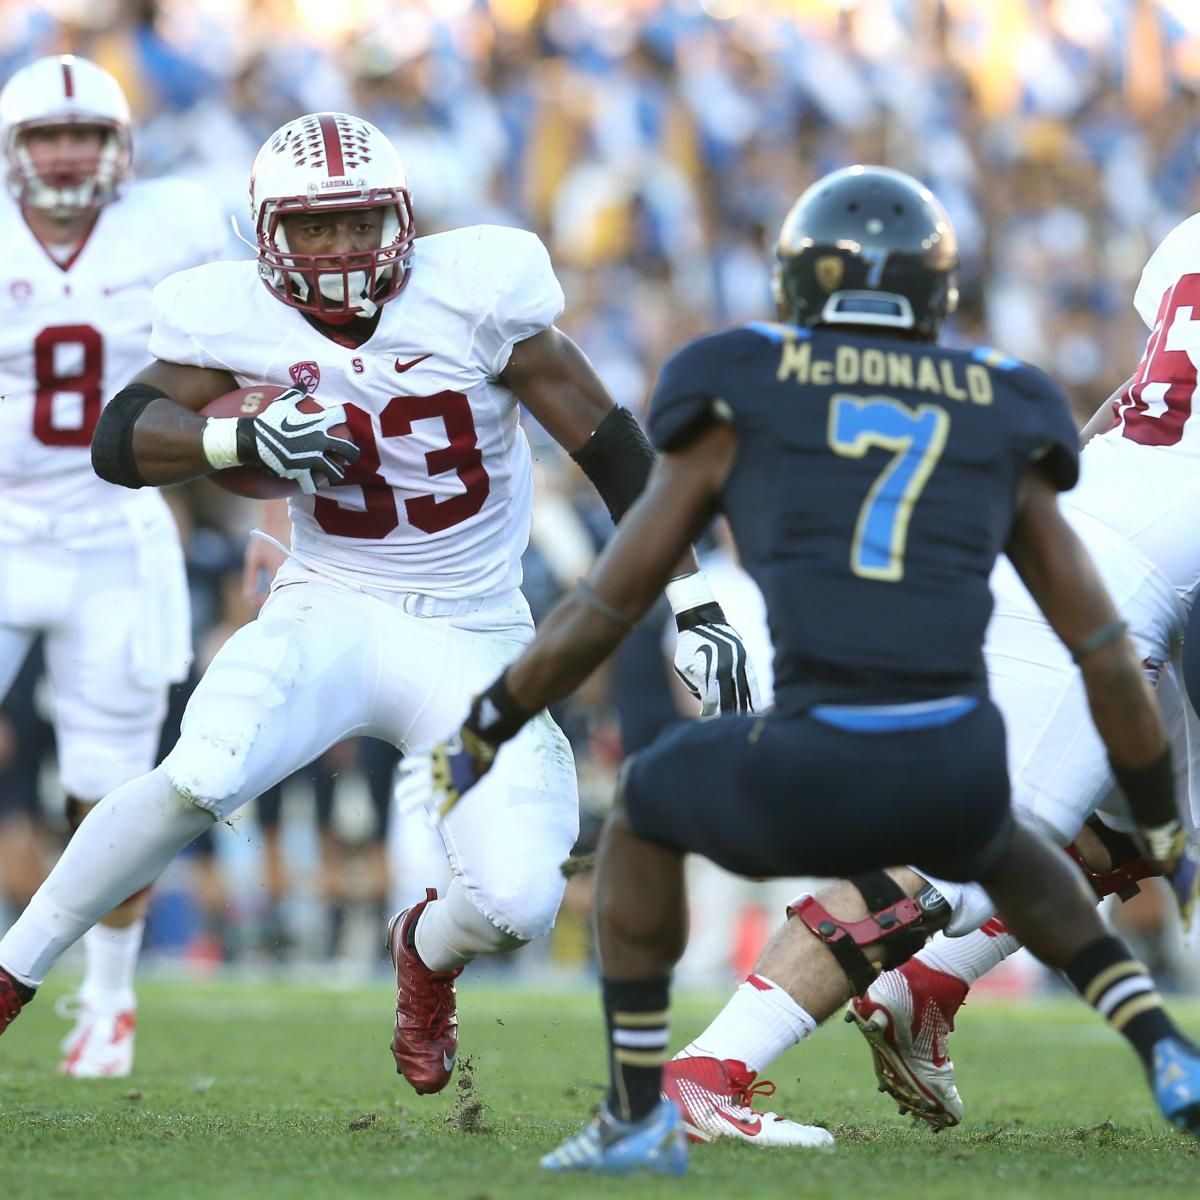 Nuggets Updated Roster: UCLA Football: Spring Practice Roster Updates